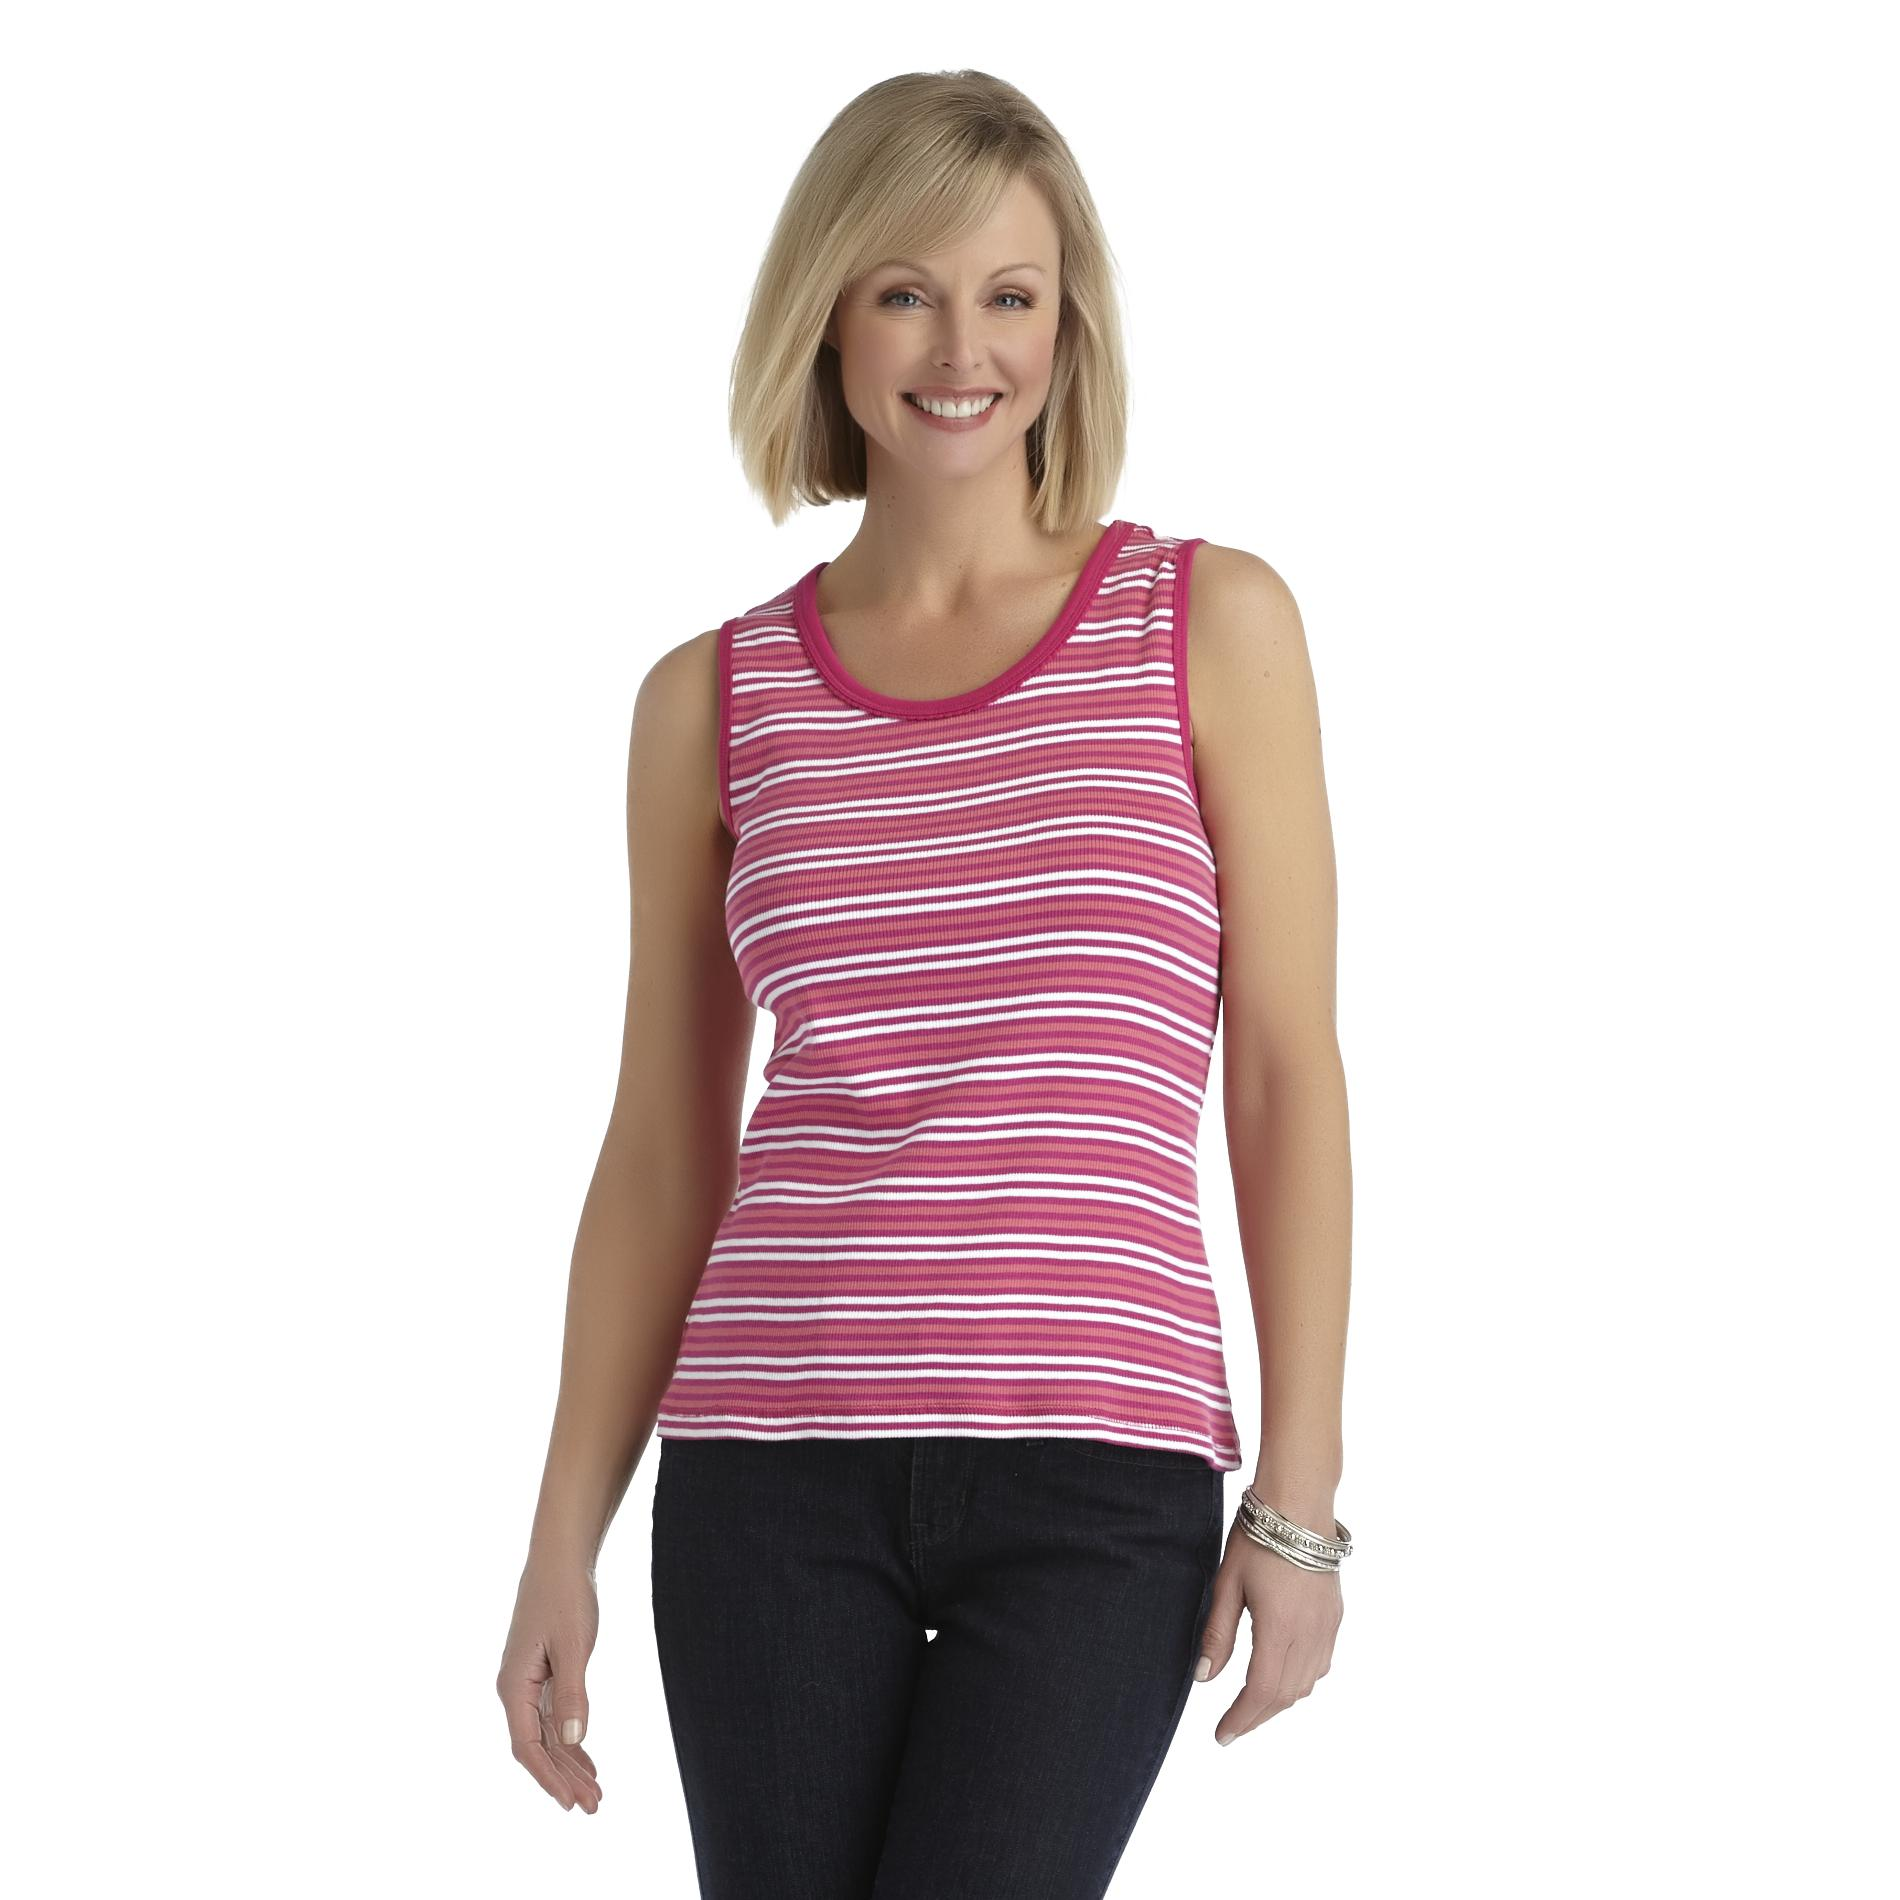 Laura Scott Women's Scoop Neck Tank Top - Striped at Sears.com